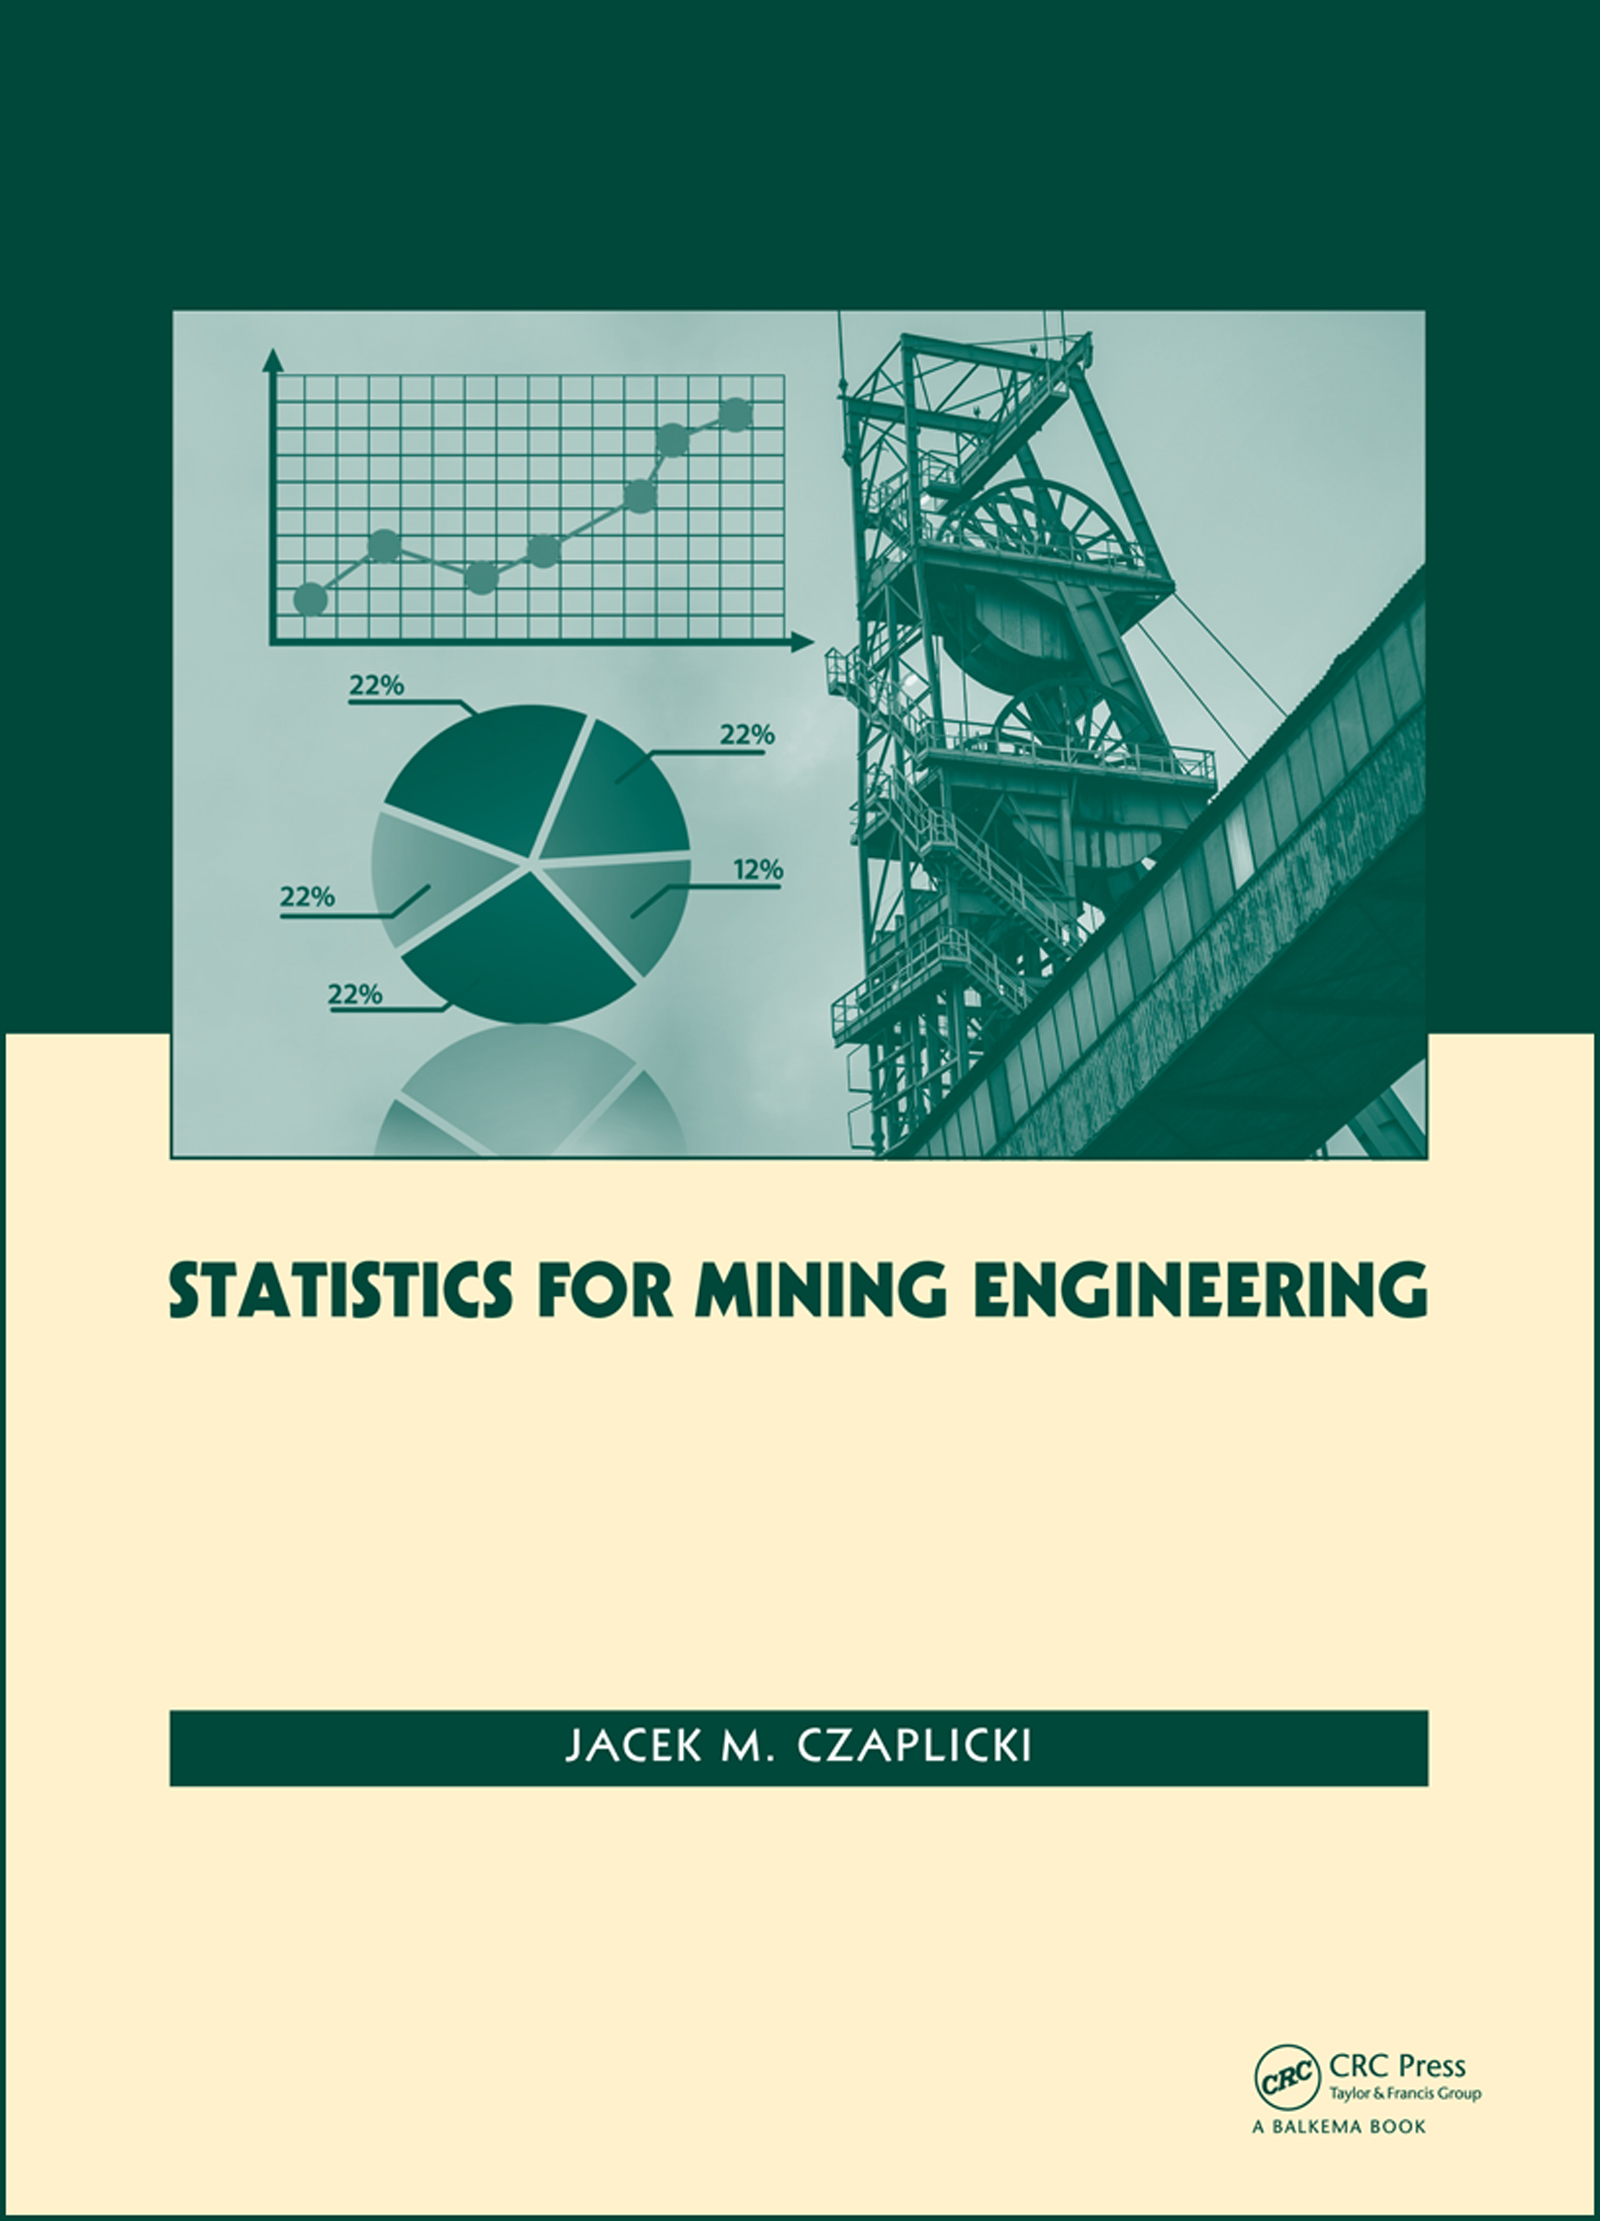 Download Ebook Statistics for Mining Engineering by Jacek M. Czaplicki Pdf